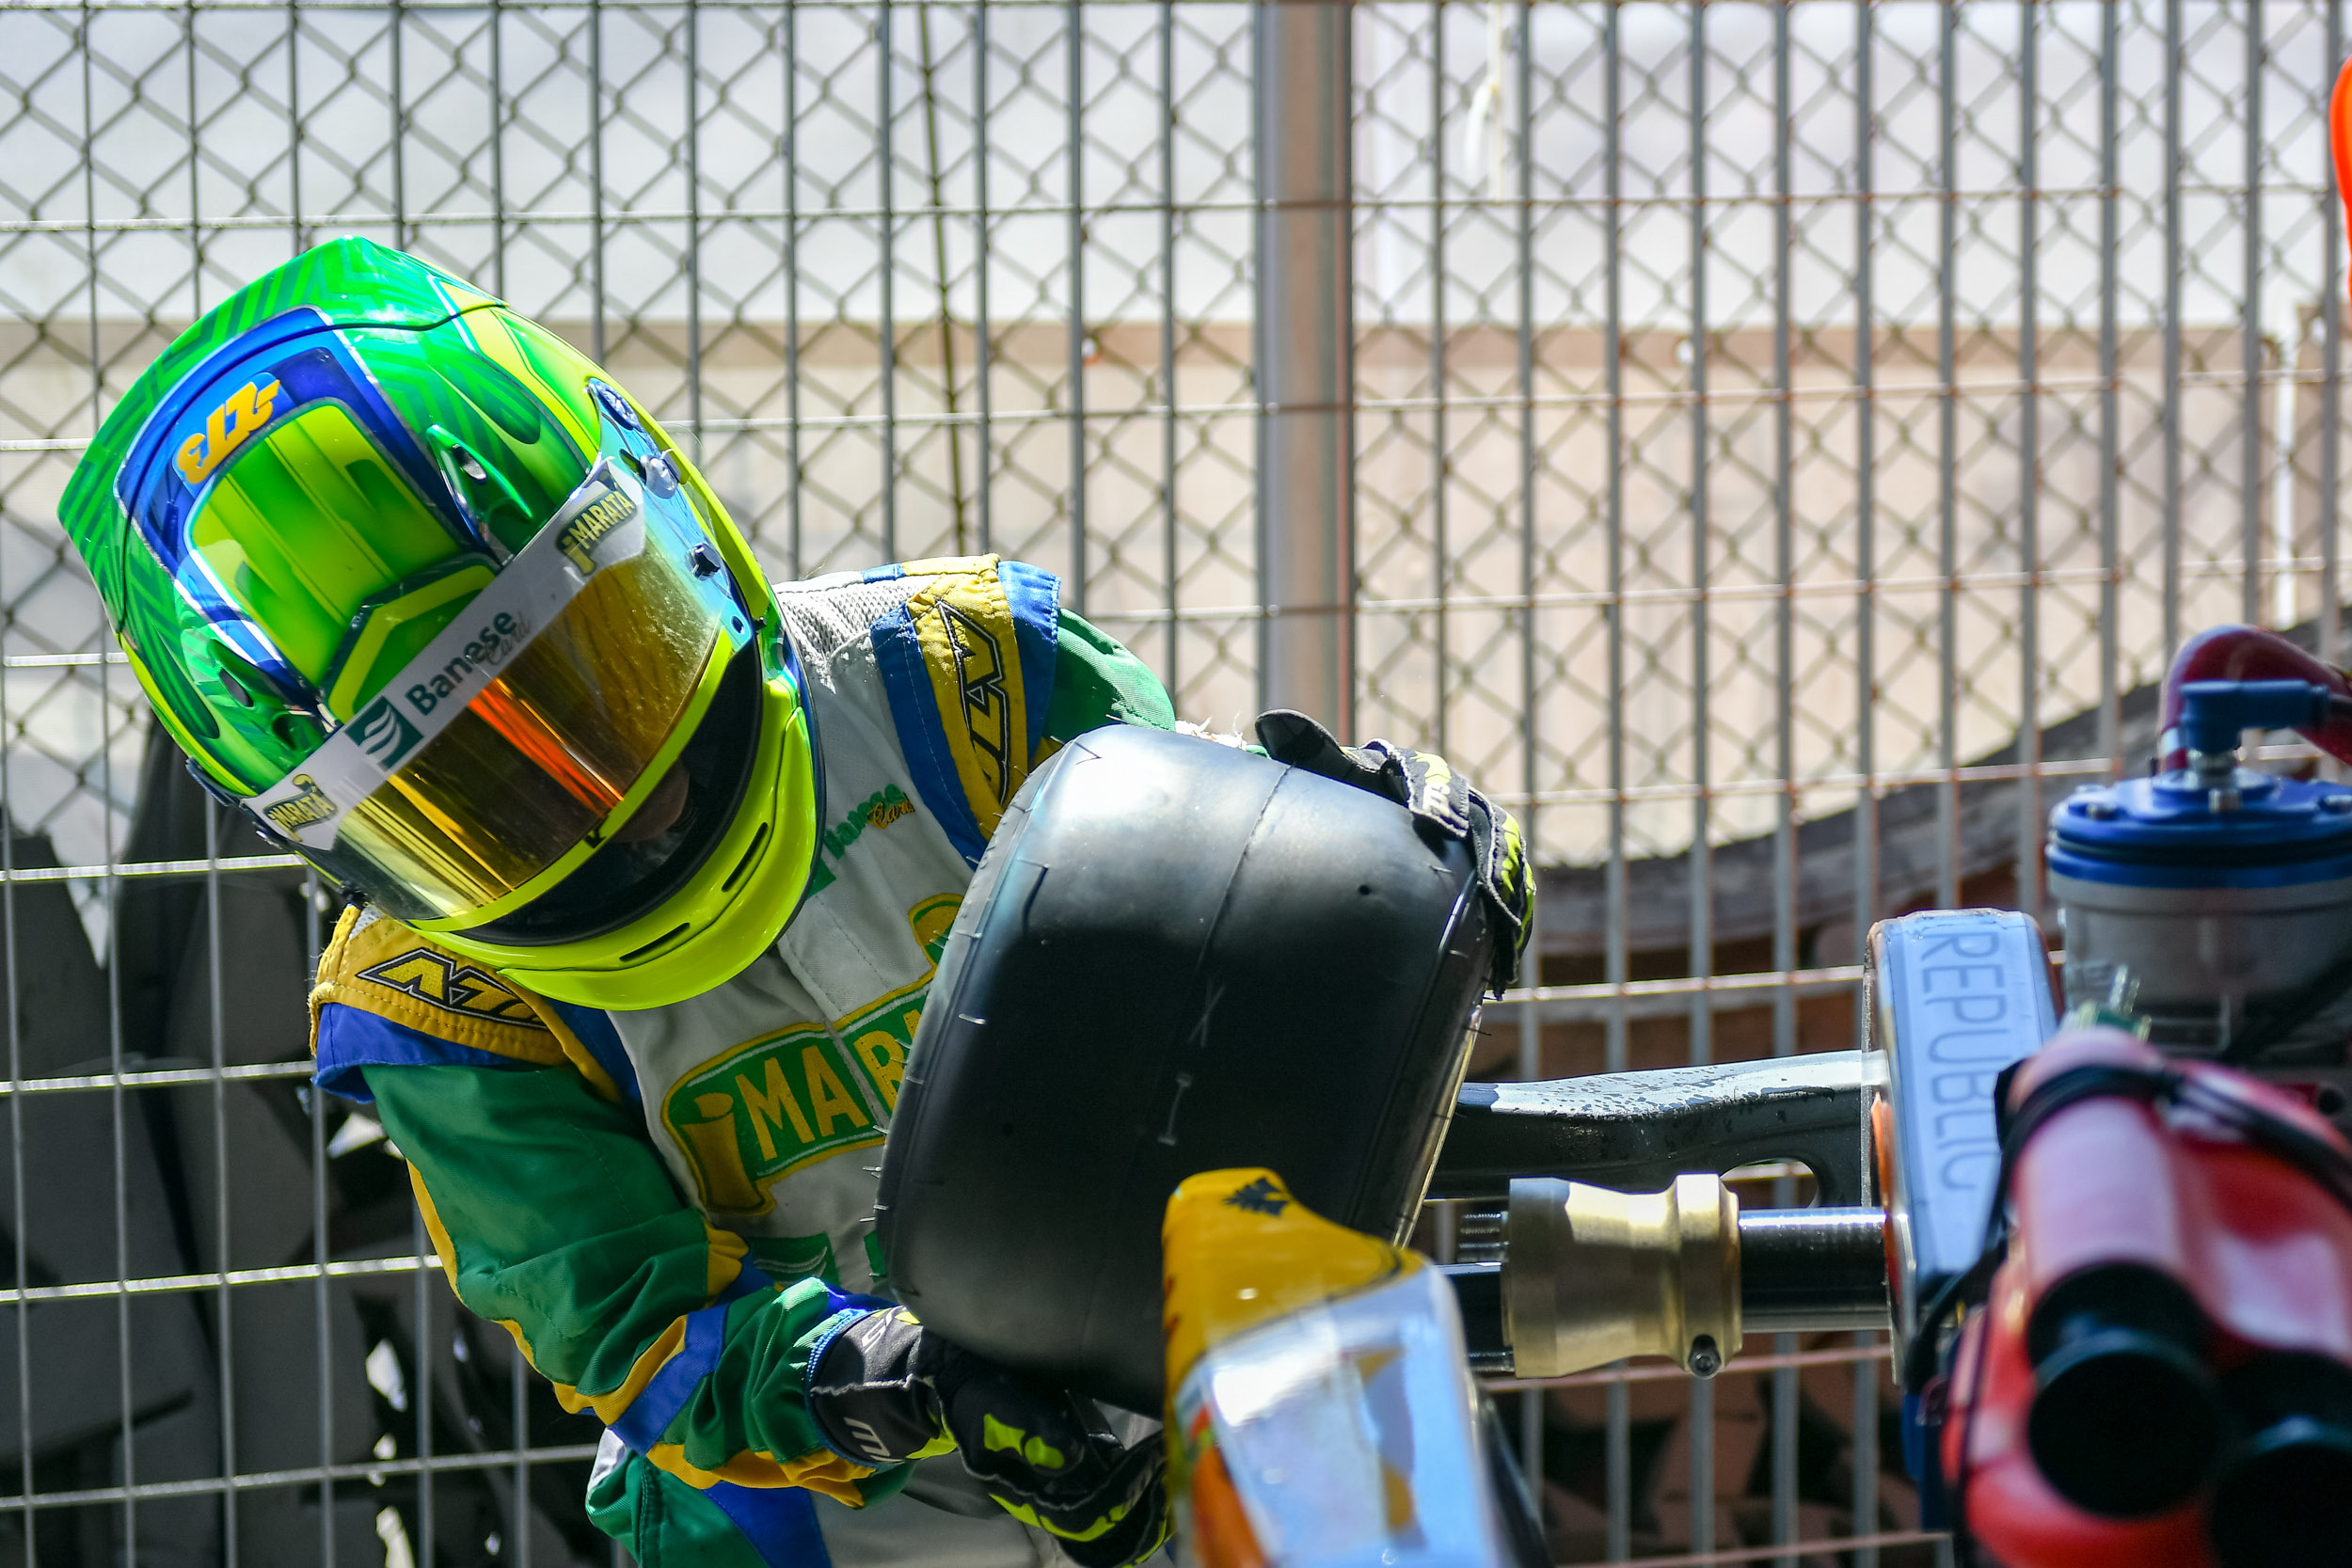 Photo of Kart – Na Inglaterra, Guilherme Figueiredo disputa 2ª etapa do Campeonato Europeu de Kart